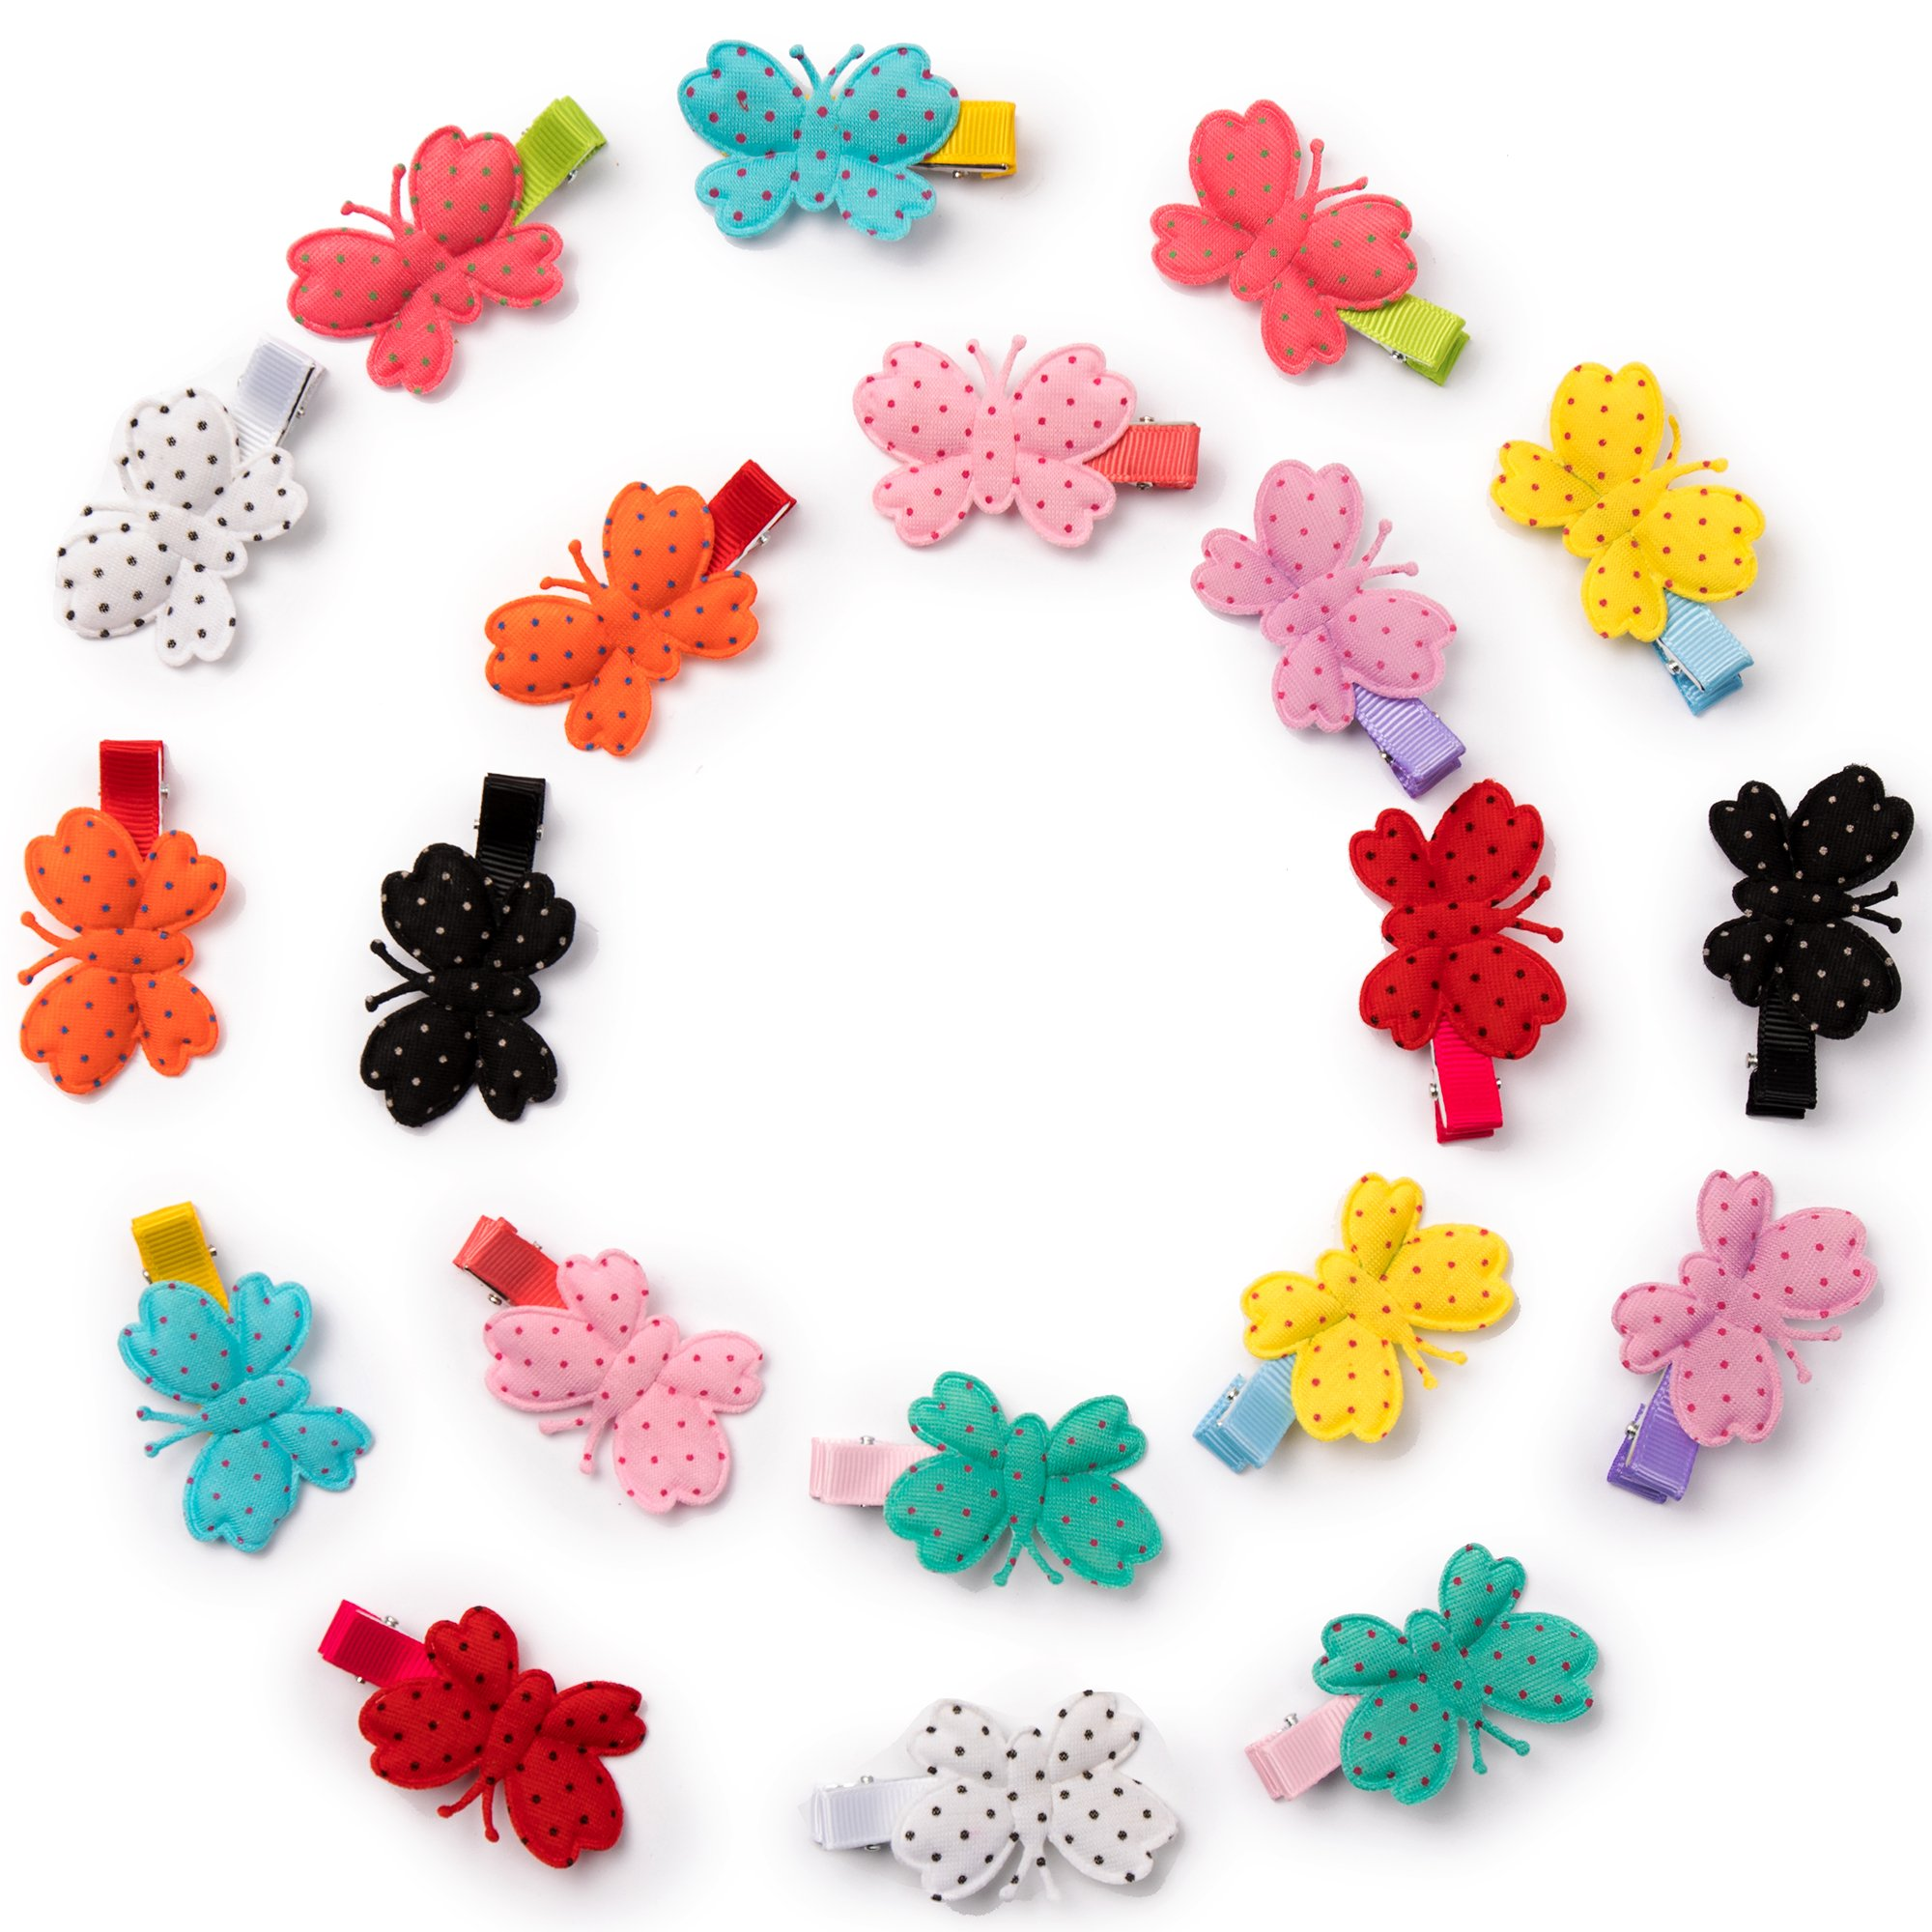 20 Pcs 1.8'' Colorful Butterfly Hair Clips For Baby girls,Toddlers, Kids & Teens